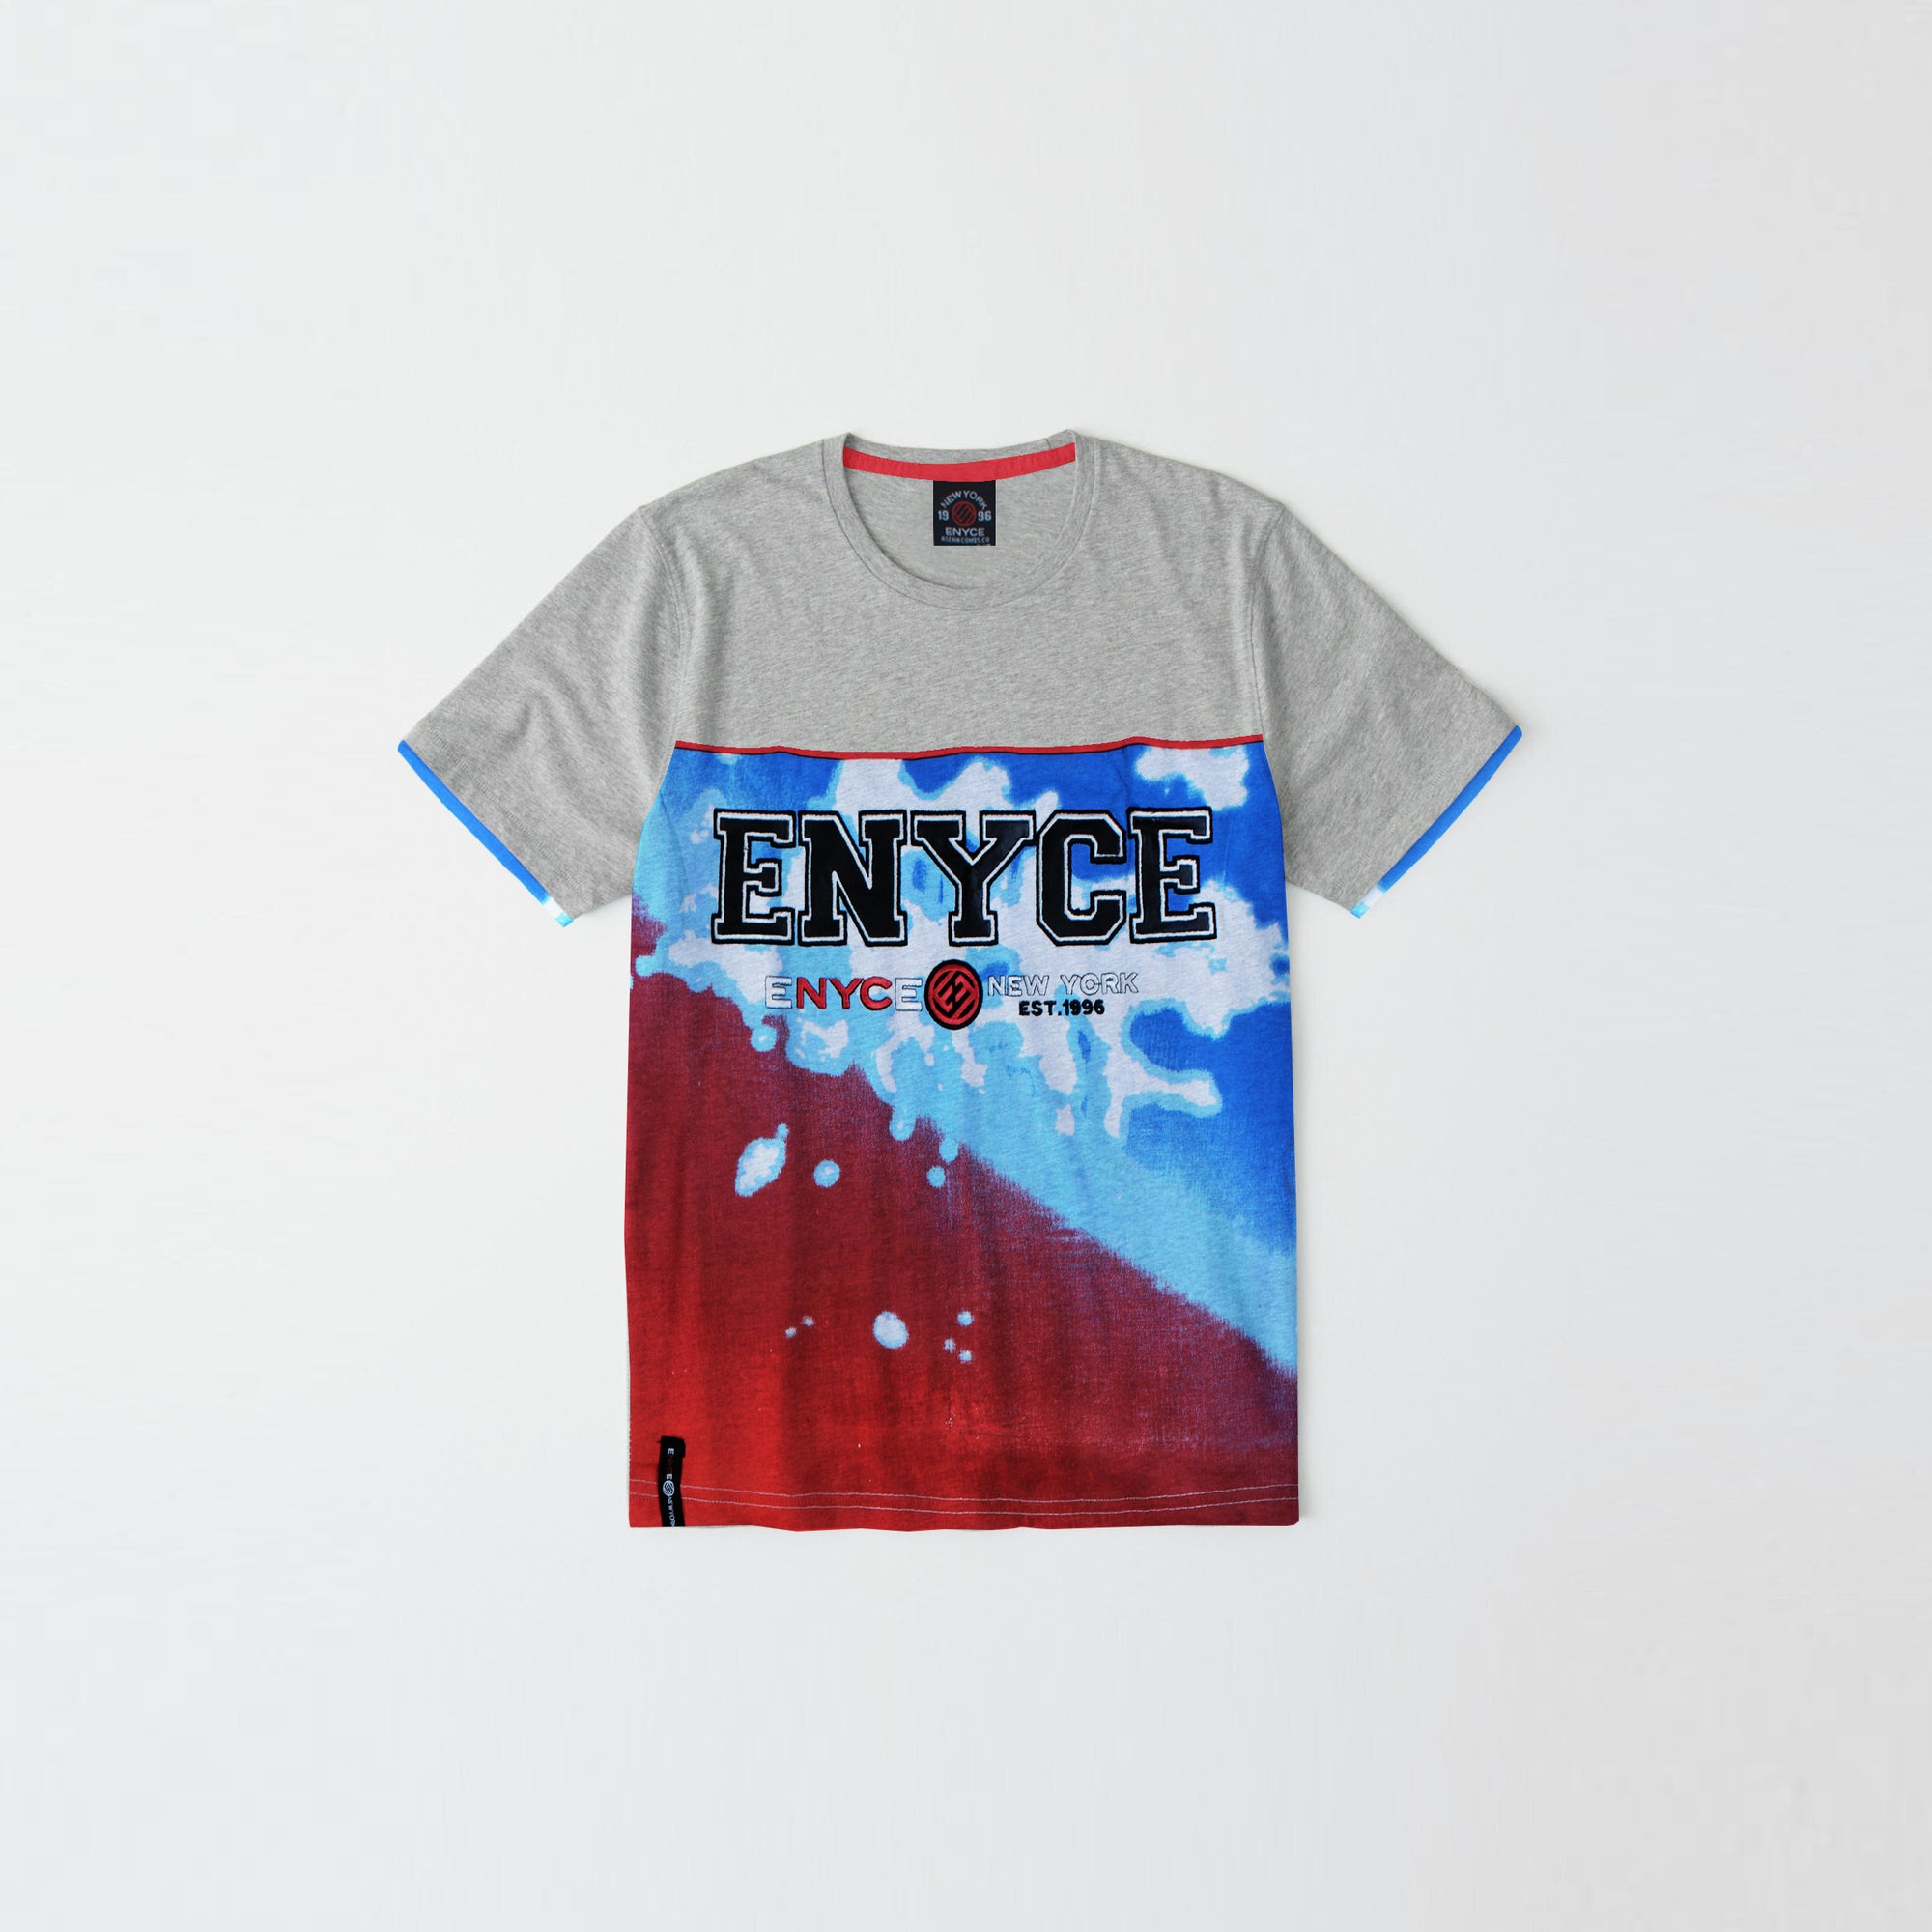 New York Enyce Crew Neck Single Jersey T Shirt For Kids-Grey & Blue Panel-NA8877